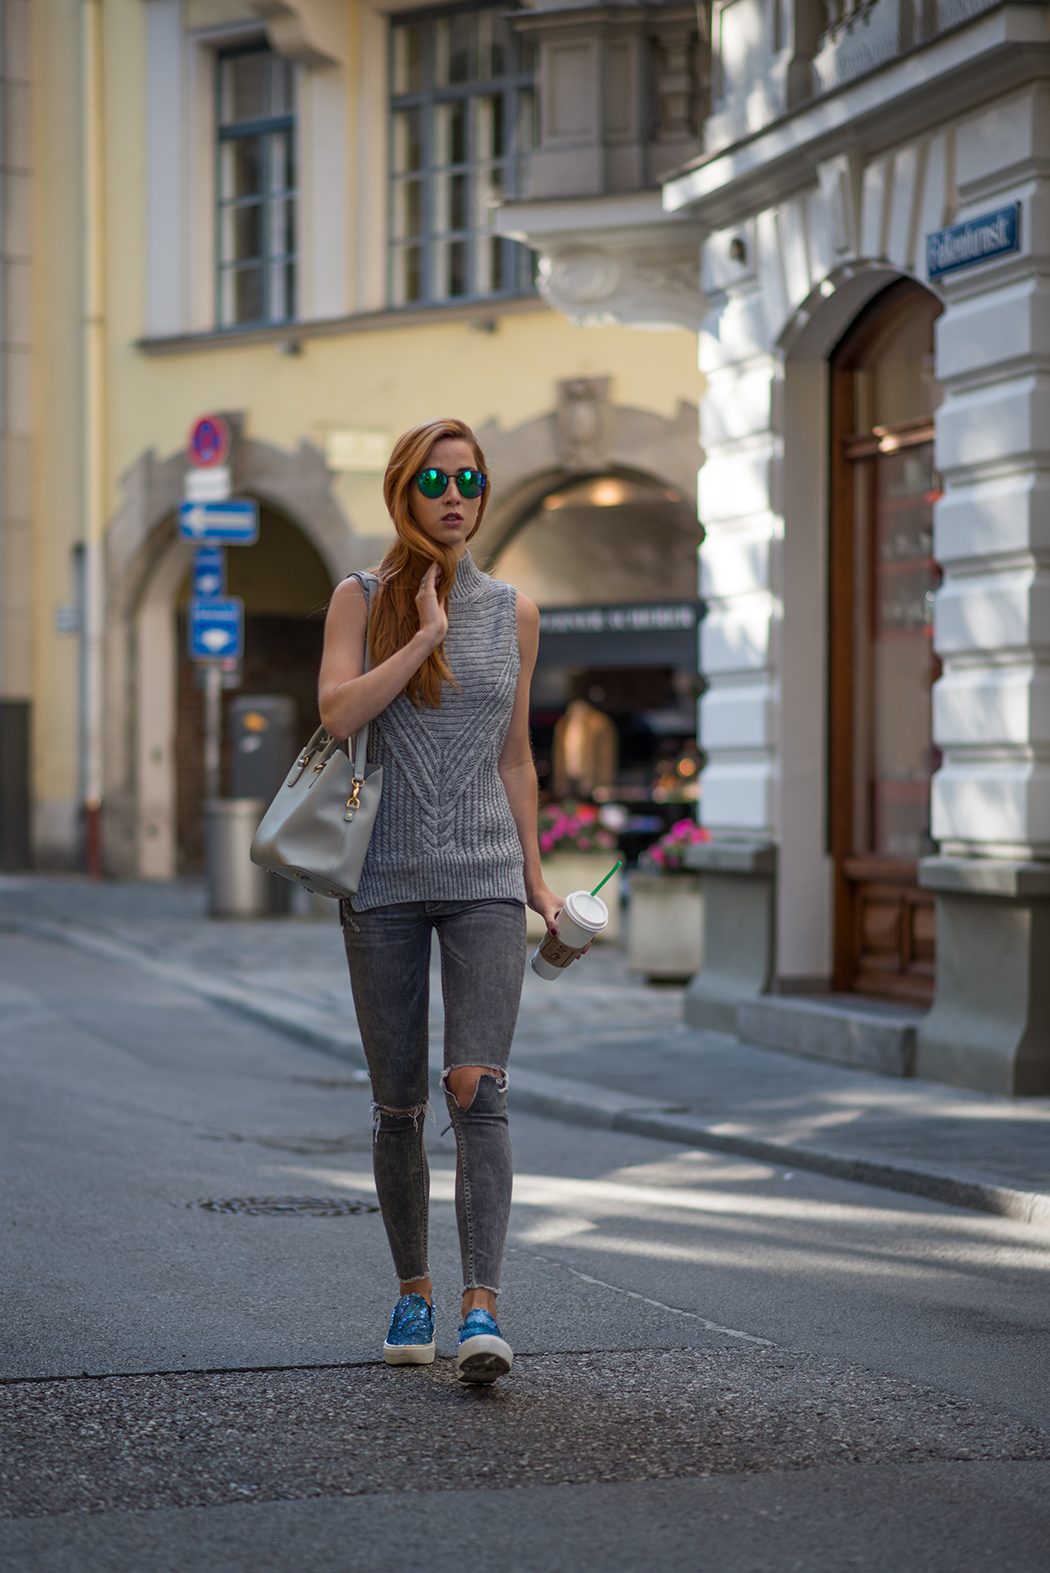 Fashionblog-Fashionblogger-München-Deutschland-Fashion-Blog-Lifestyle-Lindarella-Linda-Rella-Rollkragen-Pollunder-grau-Pinko-Pailletten-Espadrilles-Any-Di-1-web